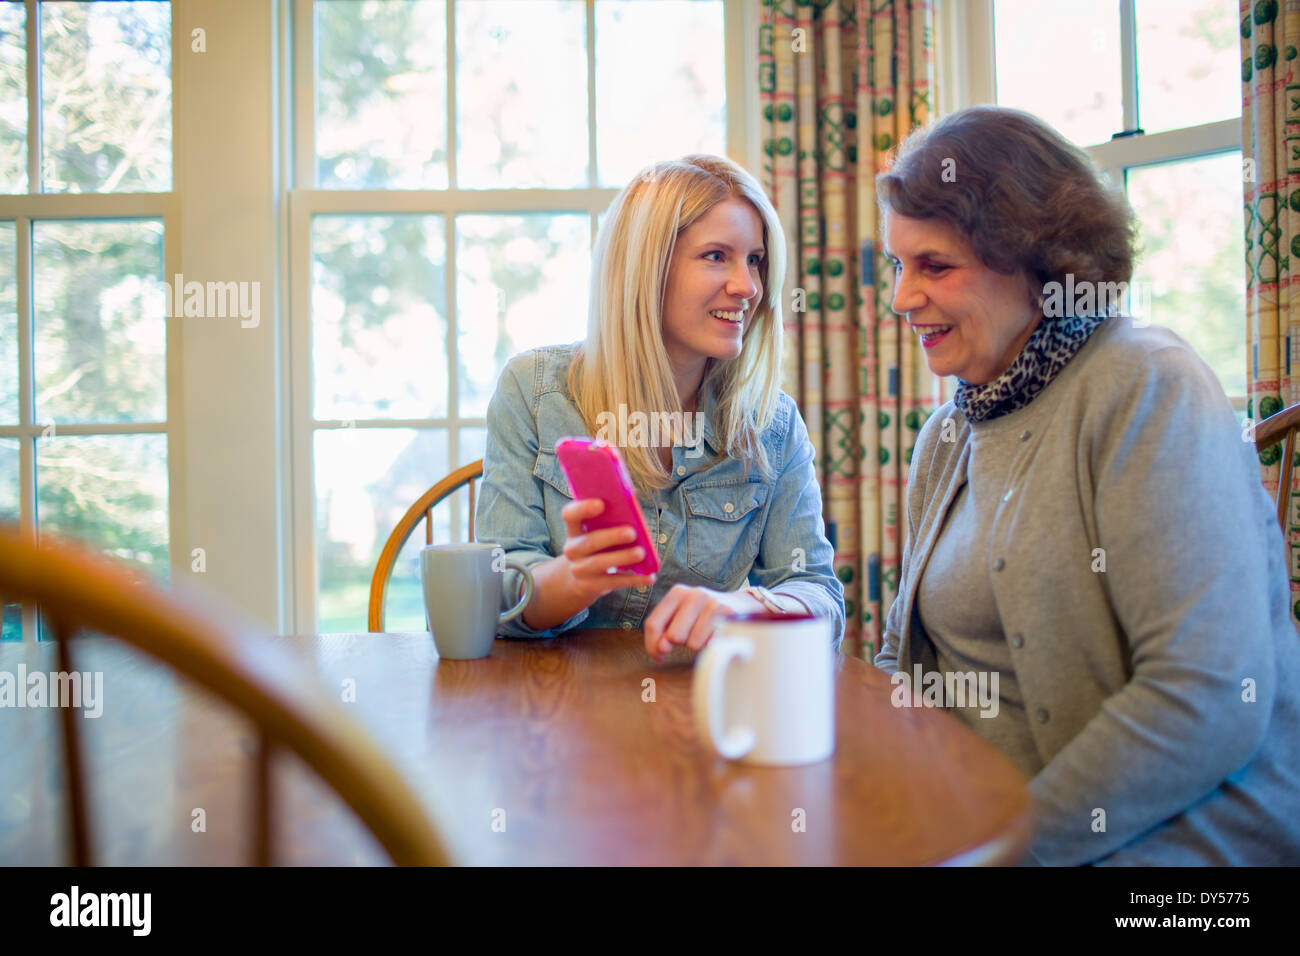 Senior woman and granddaughter looking at smartphone - Stock Image